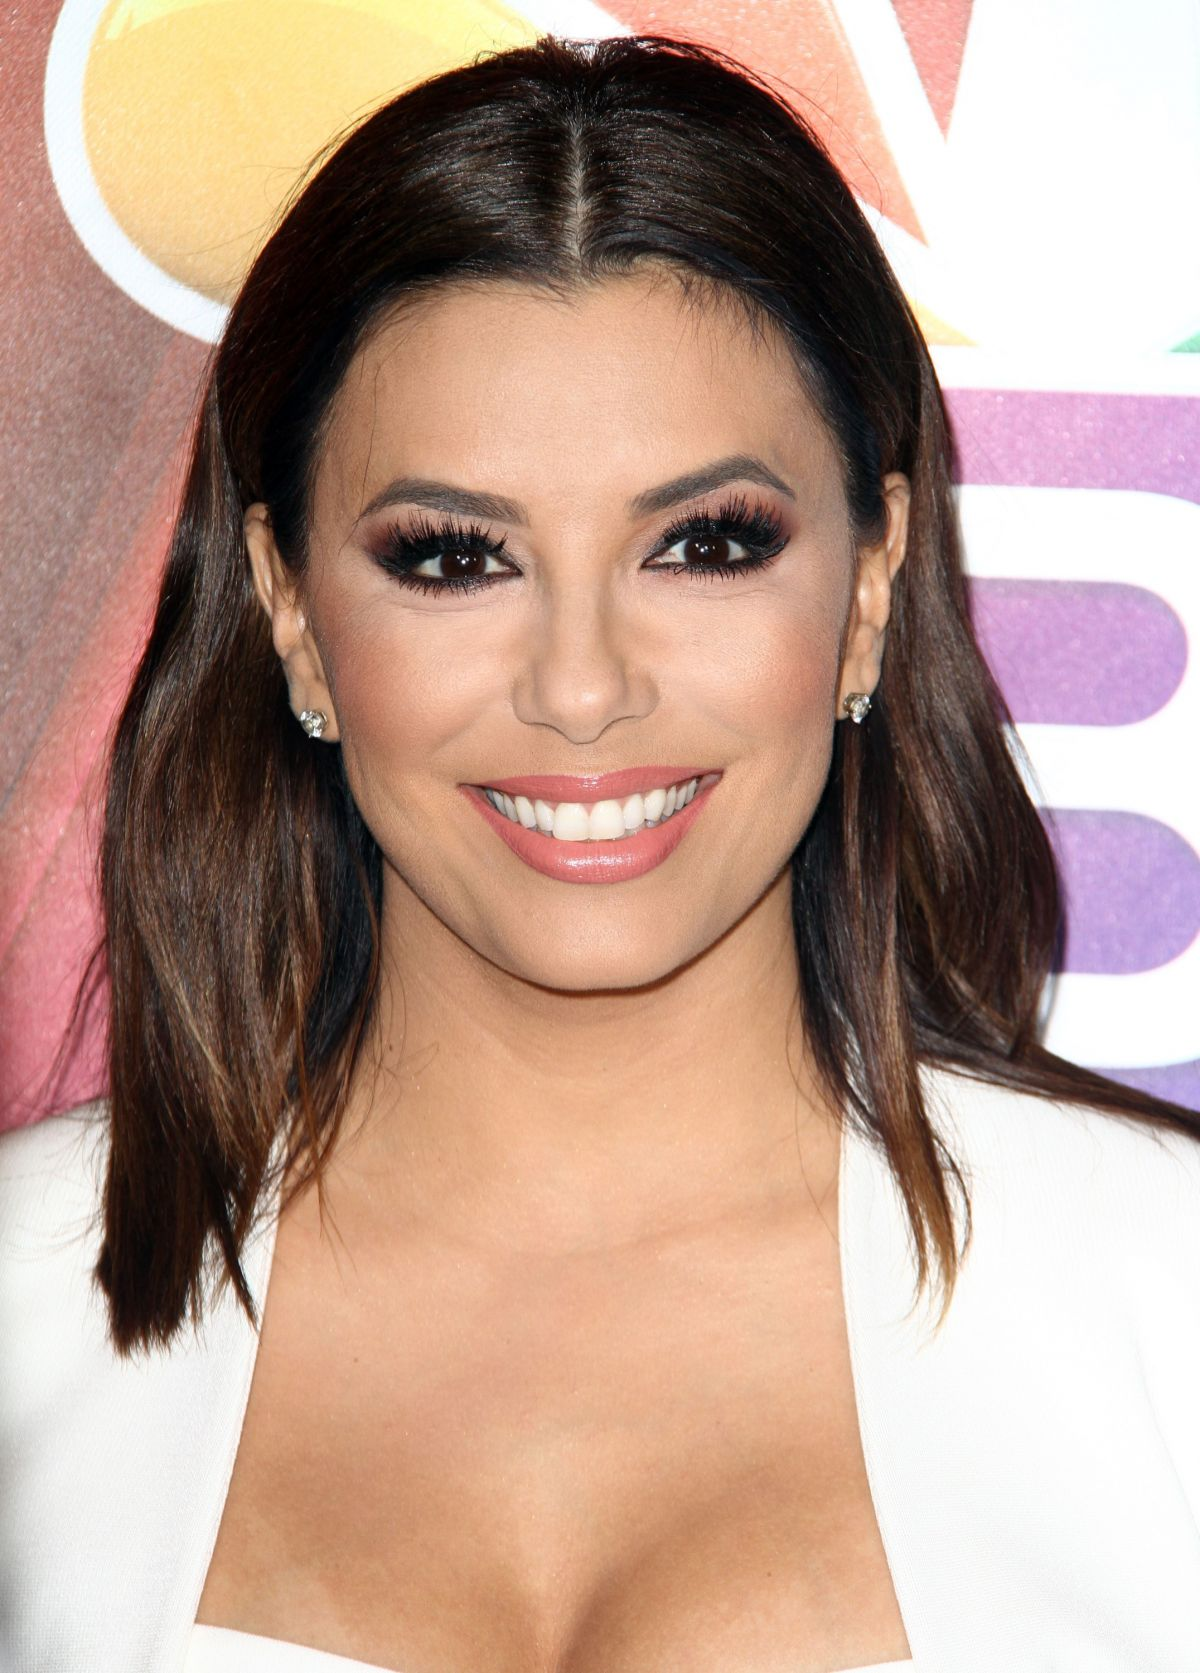 eva longoria 2016eva longoria 2016, eva longoria instagram, eva longoria 2017, eva longoria hair, eva longoria фото, eva longoria style, eva longoria baston, eva longoria parker, eva longoria rost, eva longoria wiki, eva longoria foto, eva longoria interview, eva longoria dress, eva longoria john wick, eva longoria sisters, eva longoria eva, eva longoria make up, eva longoria age, eva longoria movies, eva longoria letterman